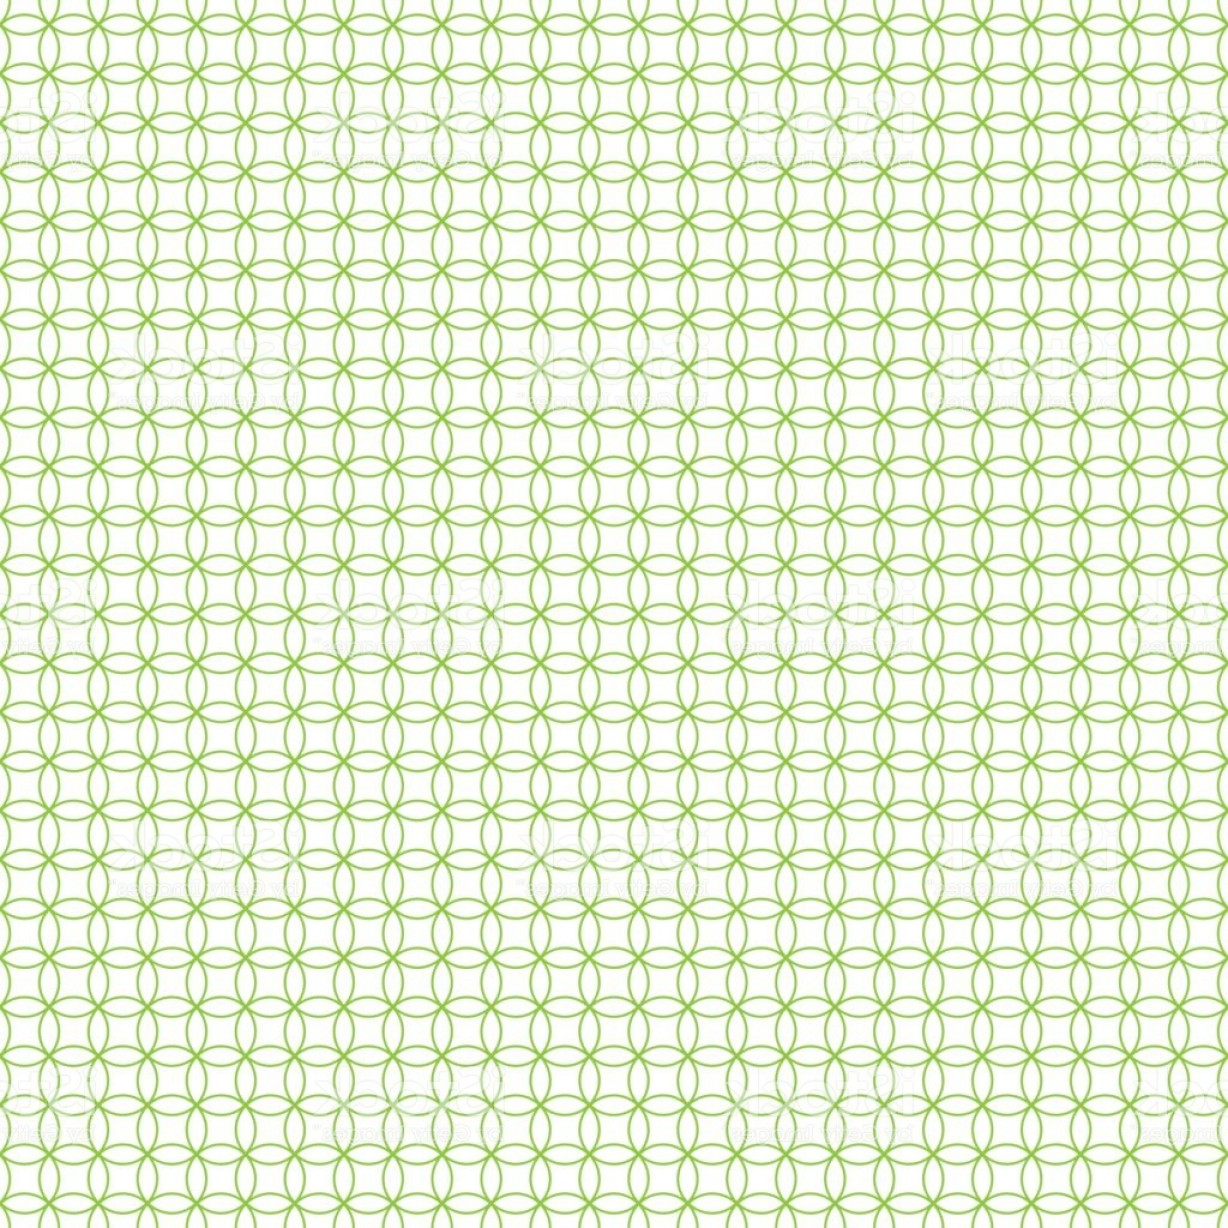 Security Vector Patterns: Seamless Cross Pattern In Green Color Made Of Circles Inspired Of Banknote Money Gm